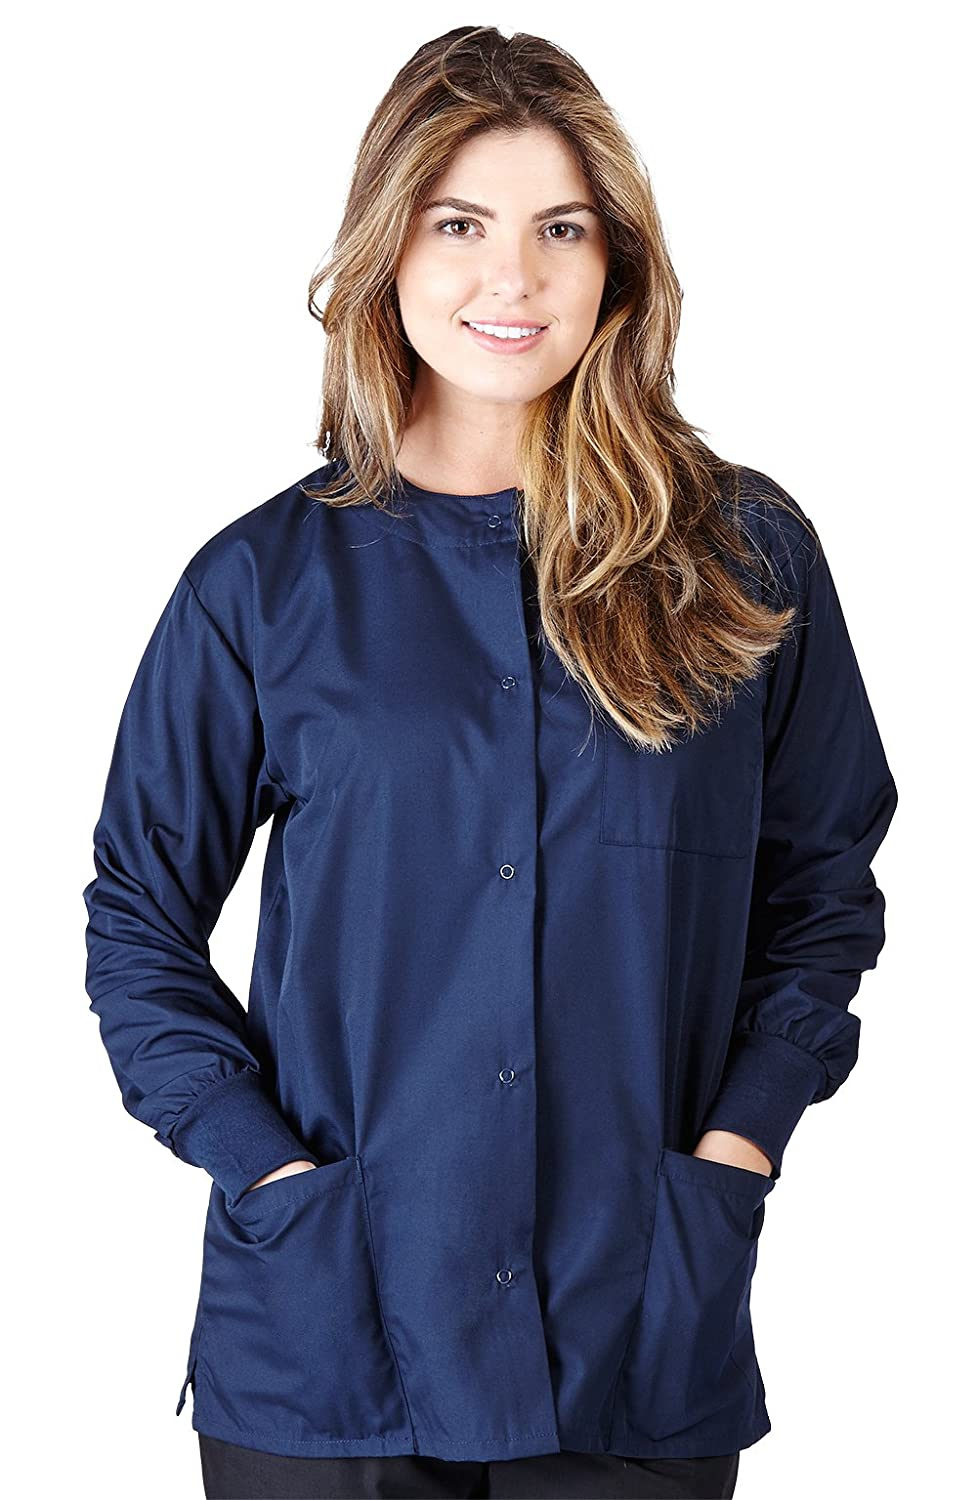 Natural Uniforms Womens Jacket Available Image 3